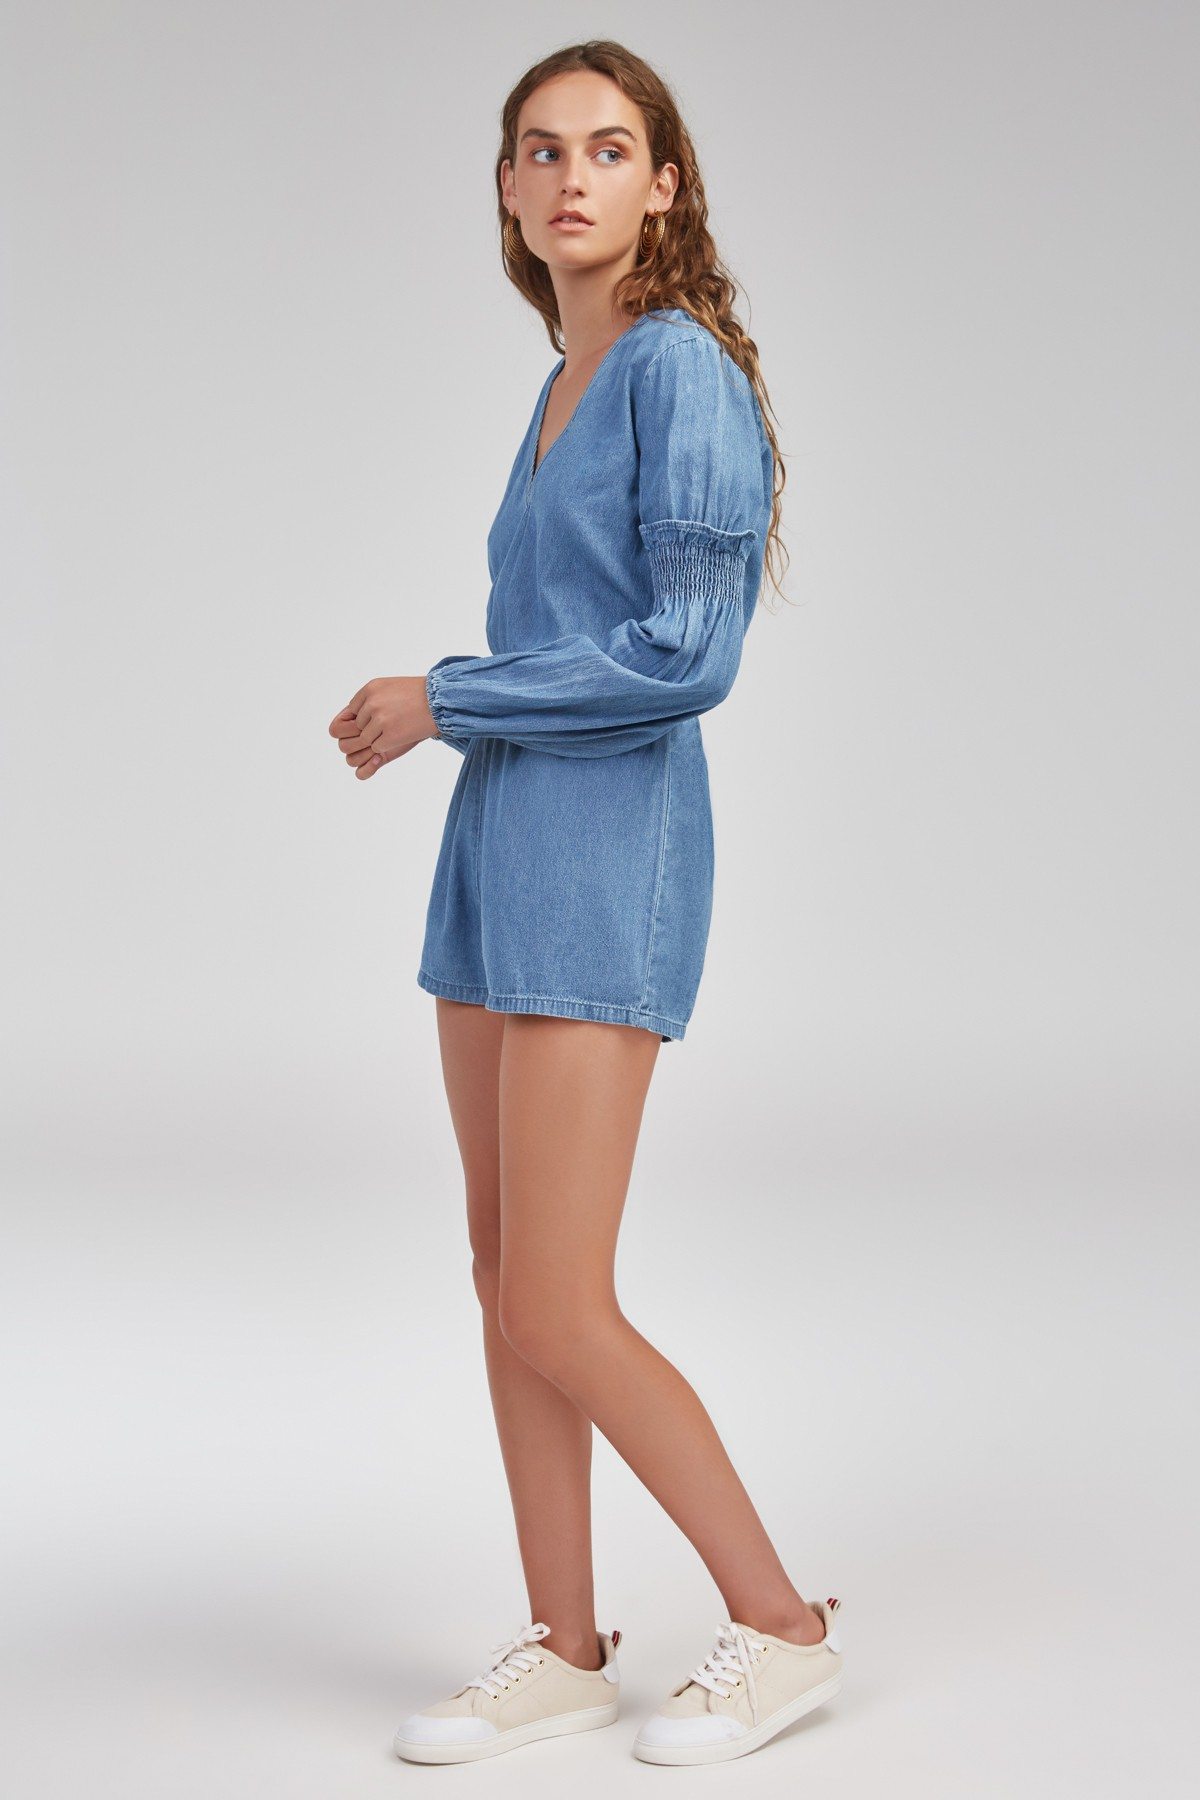 The Fifth Sentiment LS Playsuit